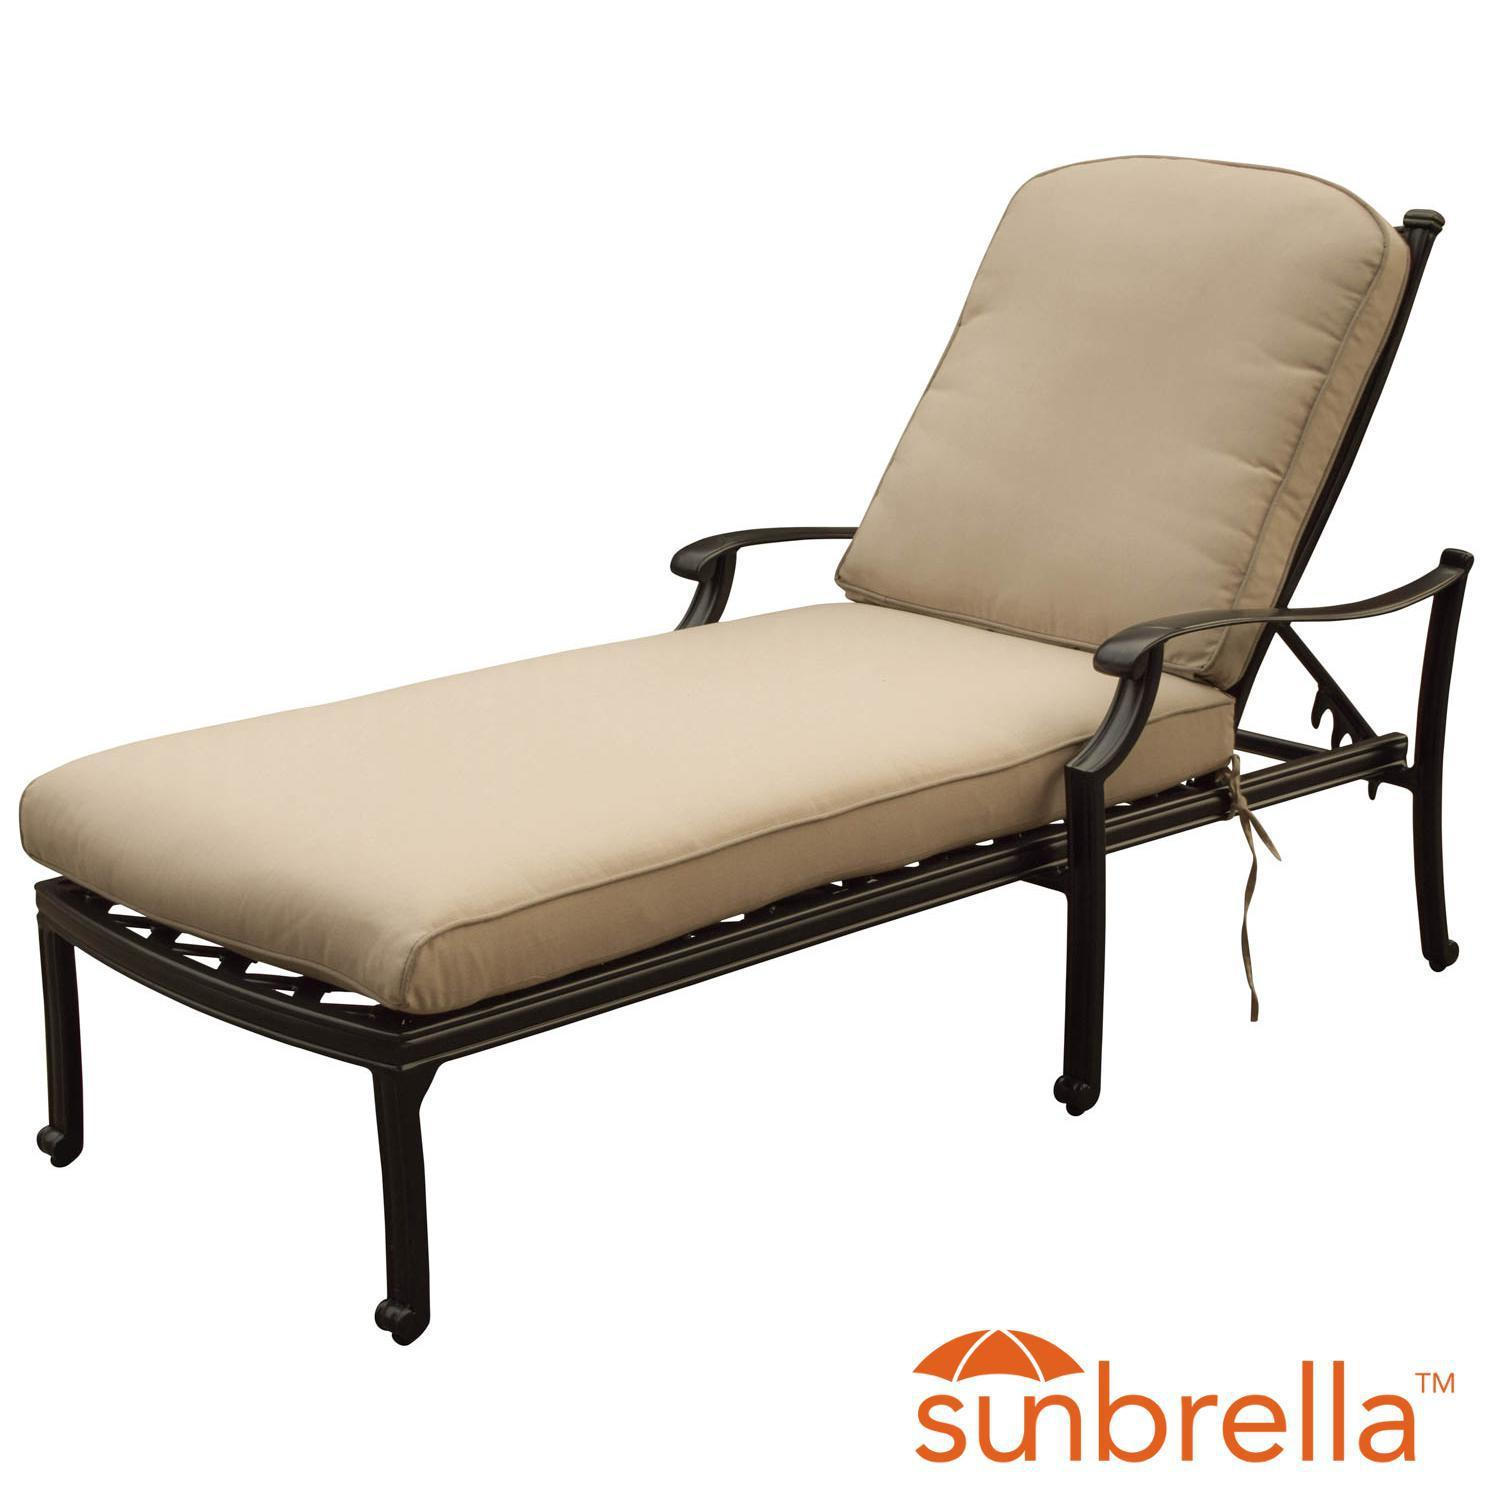 Carondelet Cast Aluminum Patio Chaise Lounge W/ Sunbrella Spectrum Sand Cushions By Lakeview Outdoor Designs